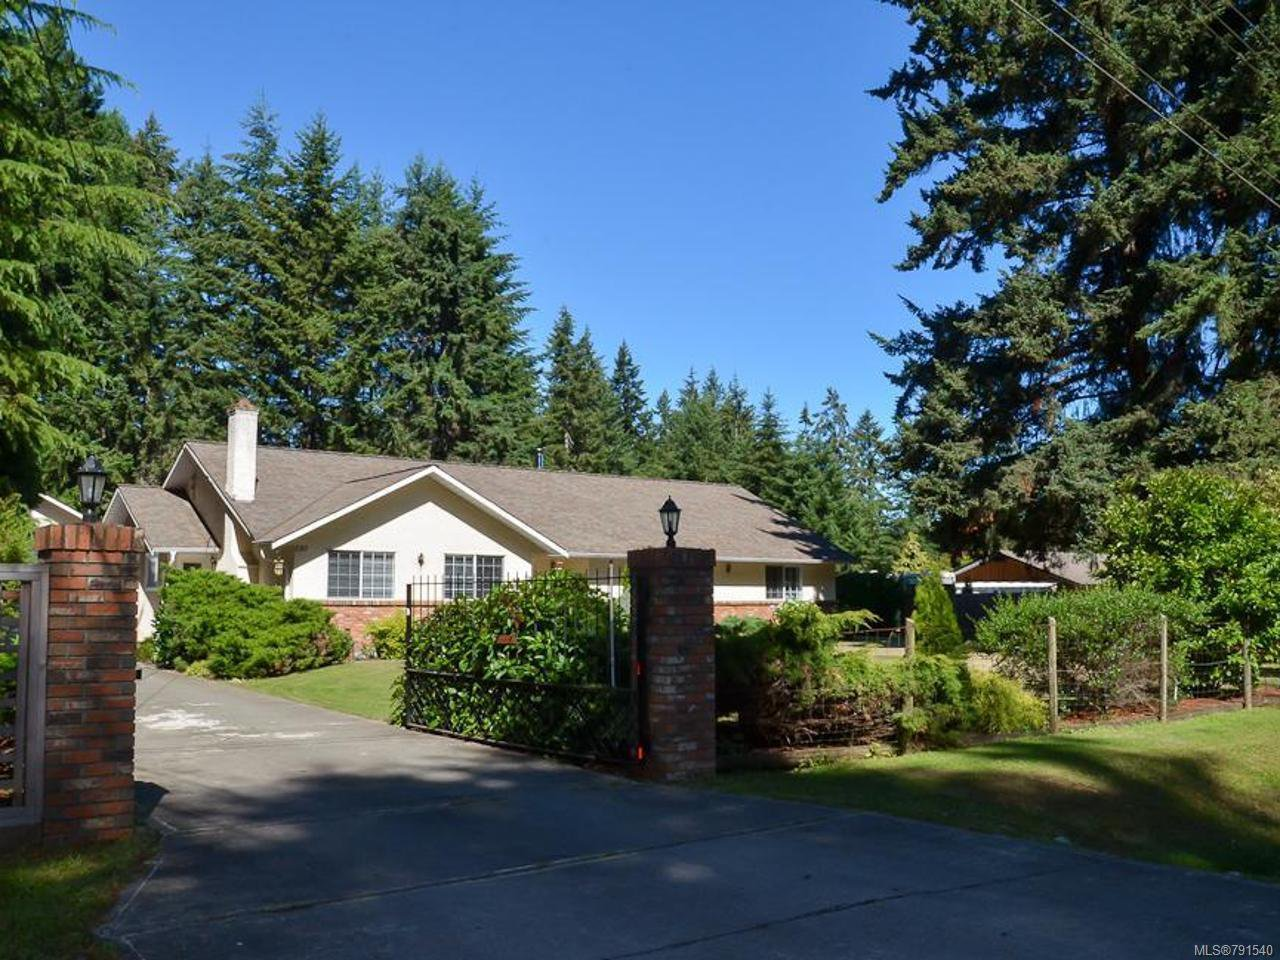 Main Photo: 585 Wain Rd in PARKSVILLE: PQ Parksville House for sale (Parksville/Qualicum)  : MLS®# 791540